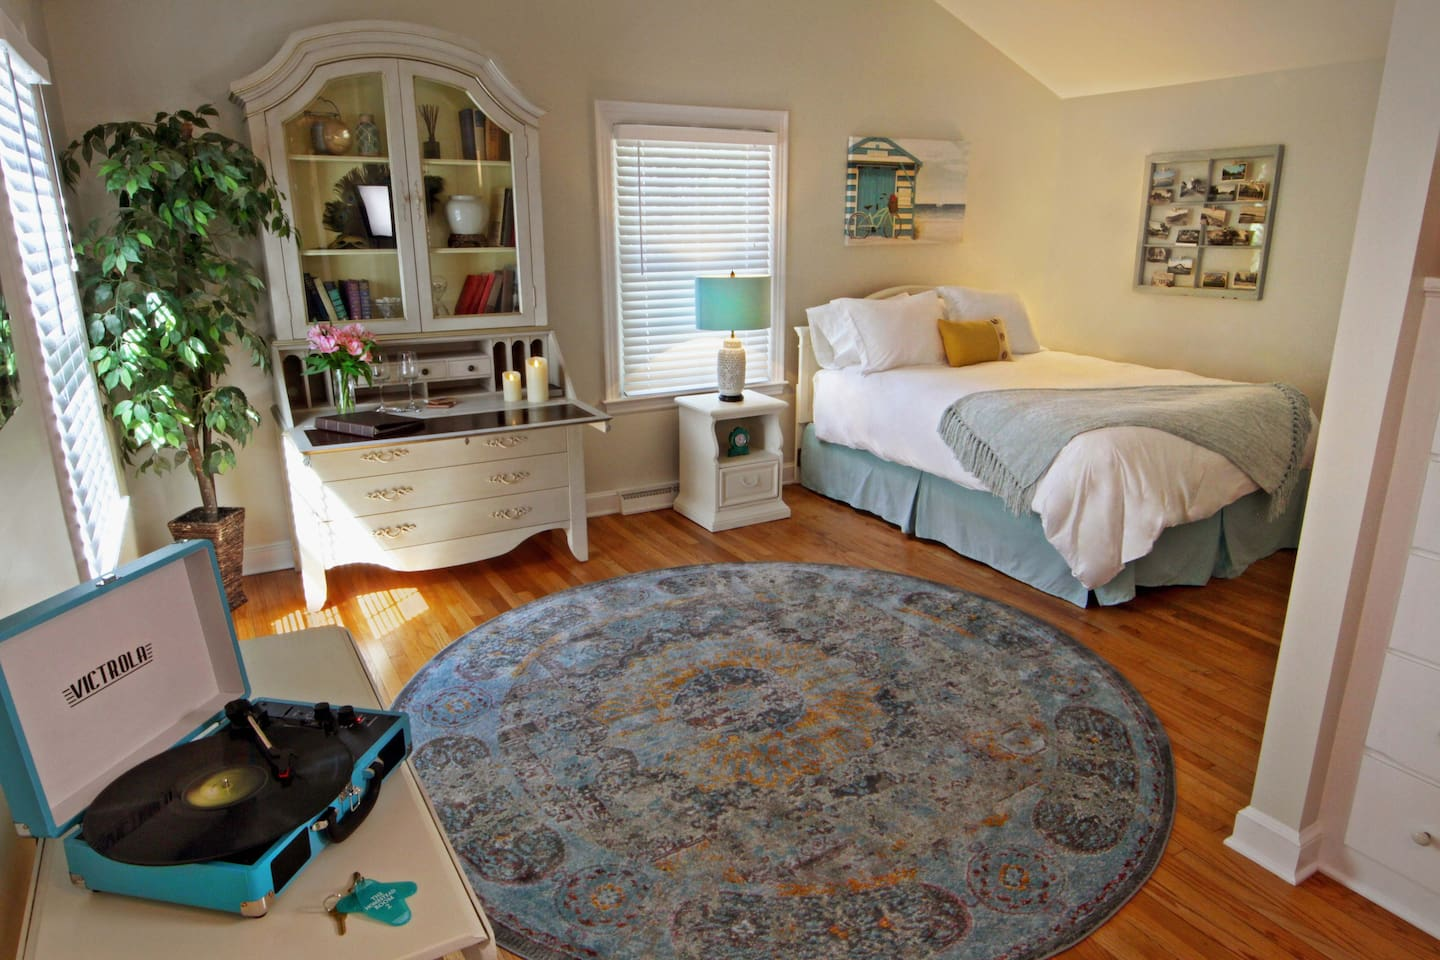 Room Two is located on our first floor, next to our shared living room space. It is a private bedroom with a private bathroom with a shower/bathtub.  The room is very bright and does have a private entrance if desired. It also has a small deck that leads to the private entrance.